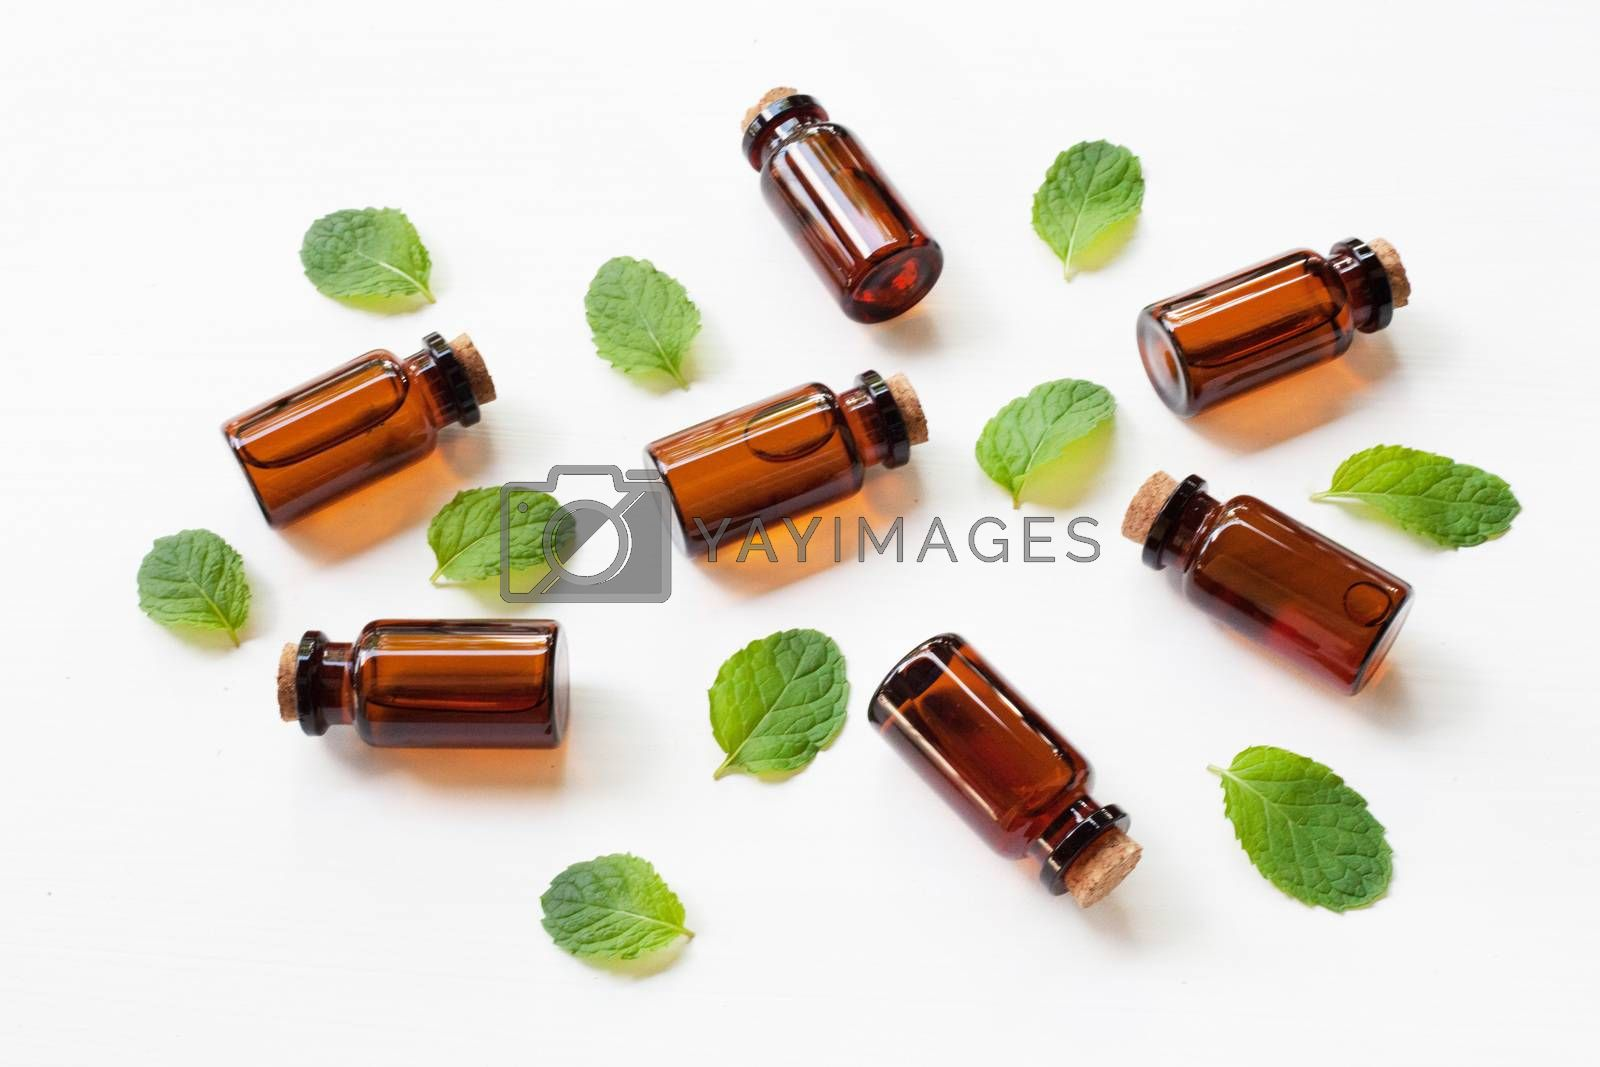 Mint Essential Oil in a Glass Bottle with leaves on white backgr by Bowonpat